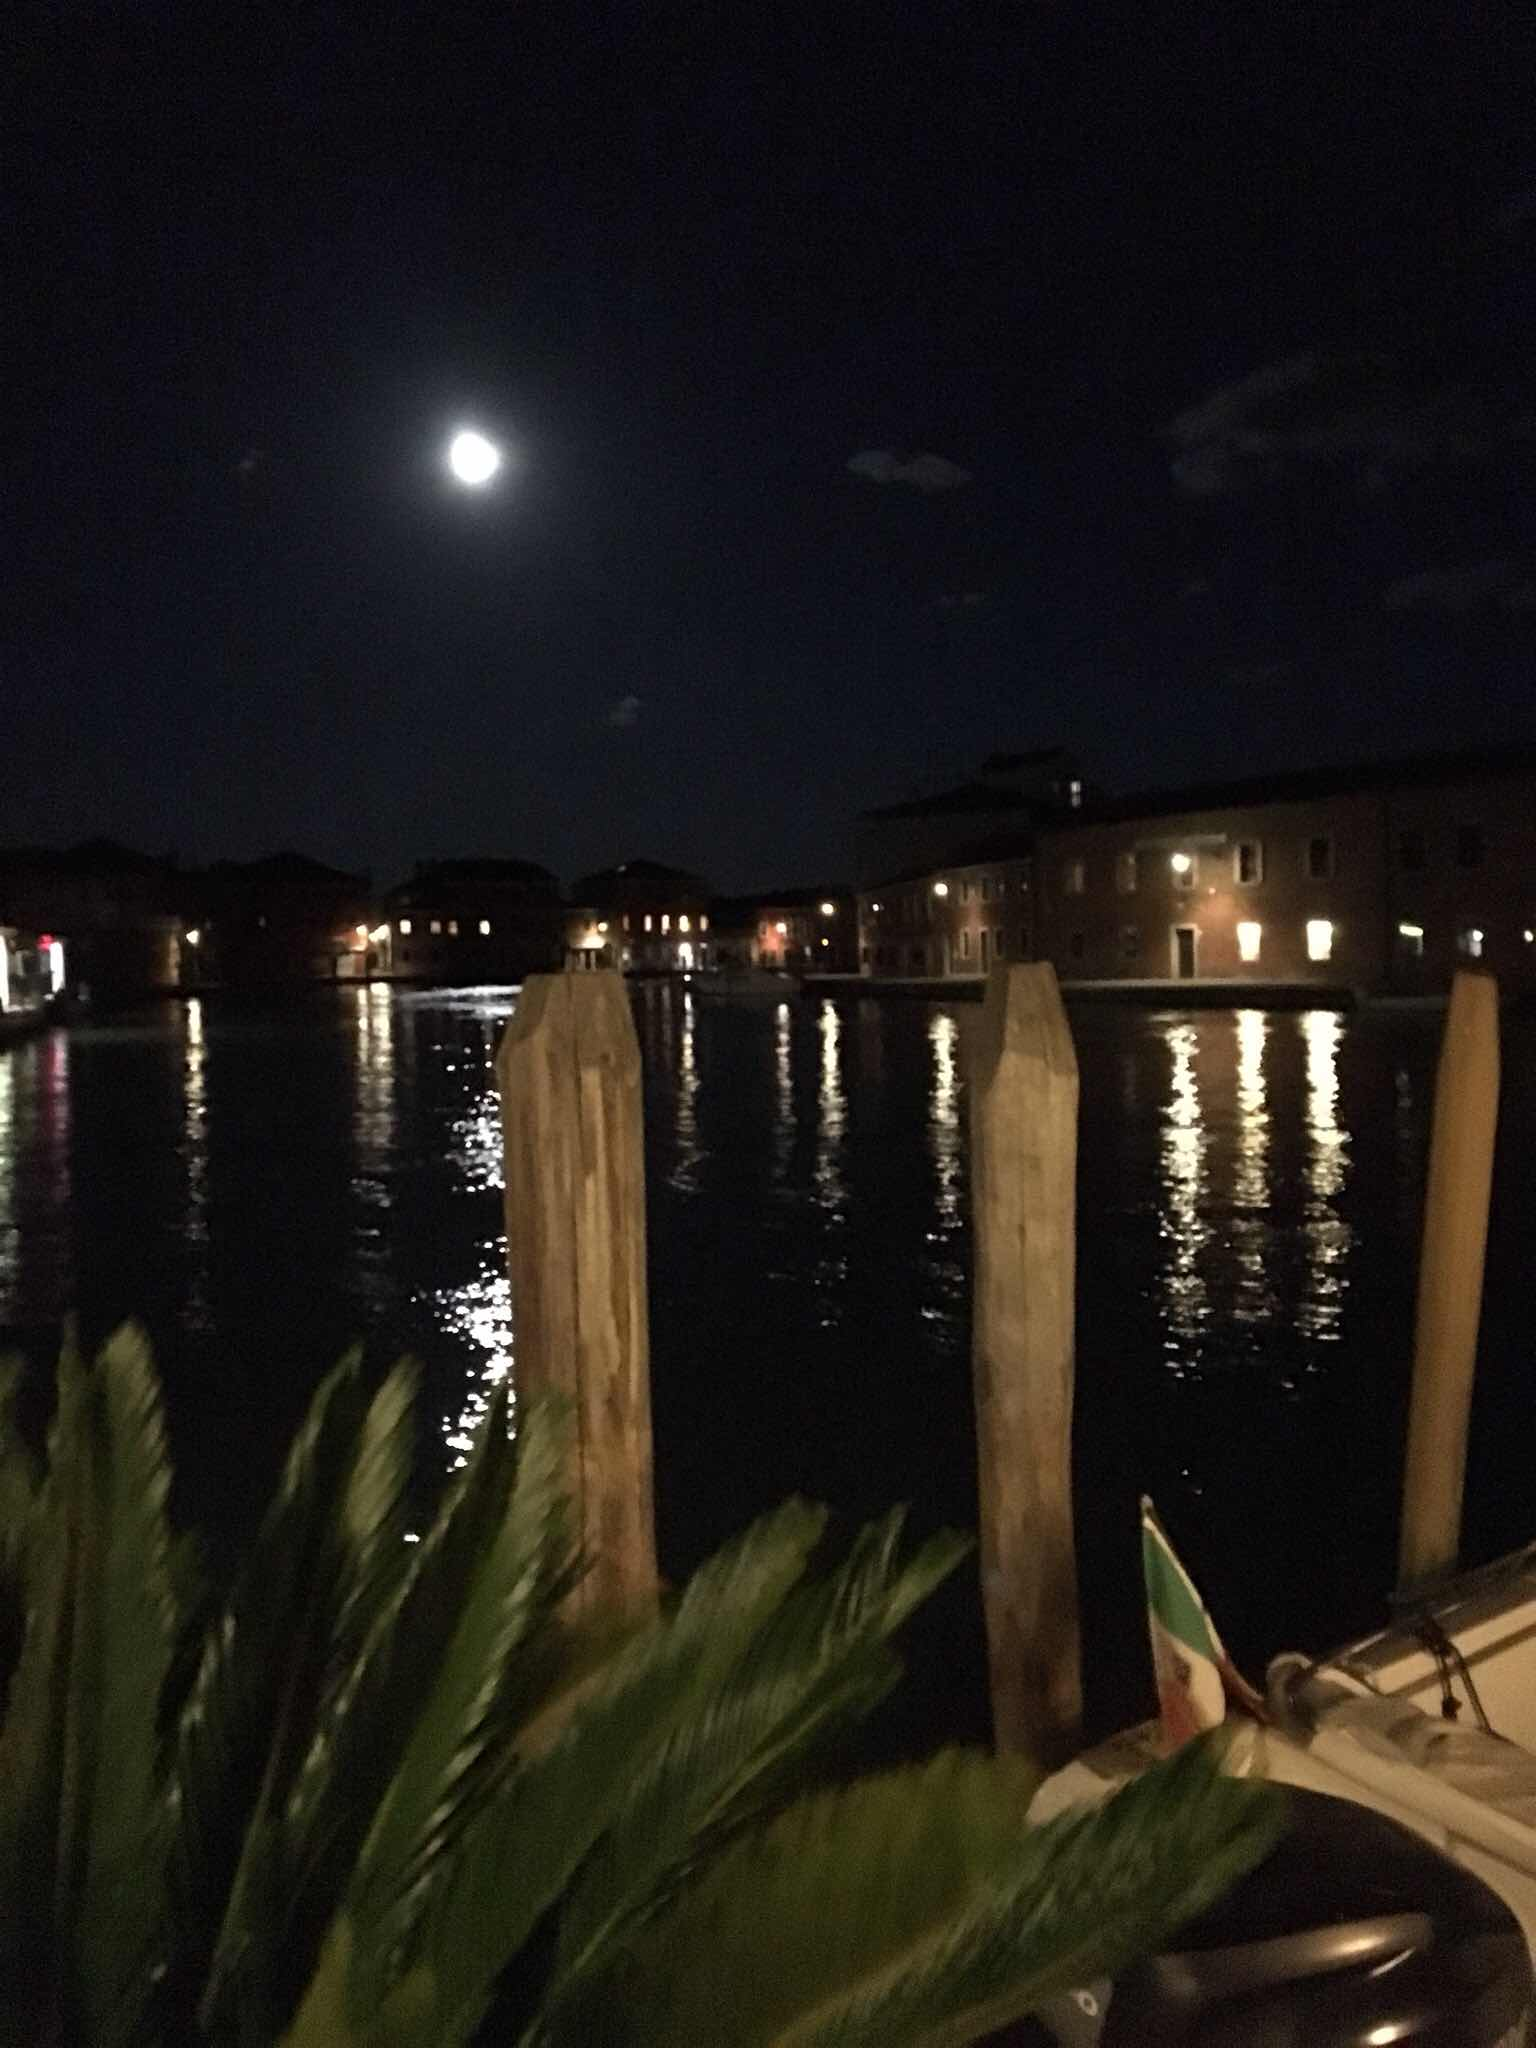 Moonlight on the canal in Murano